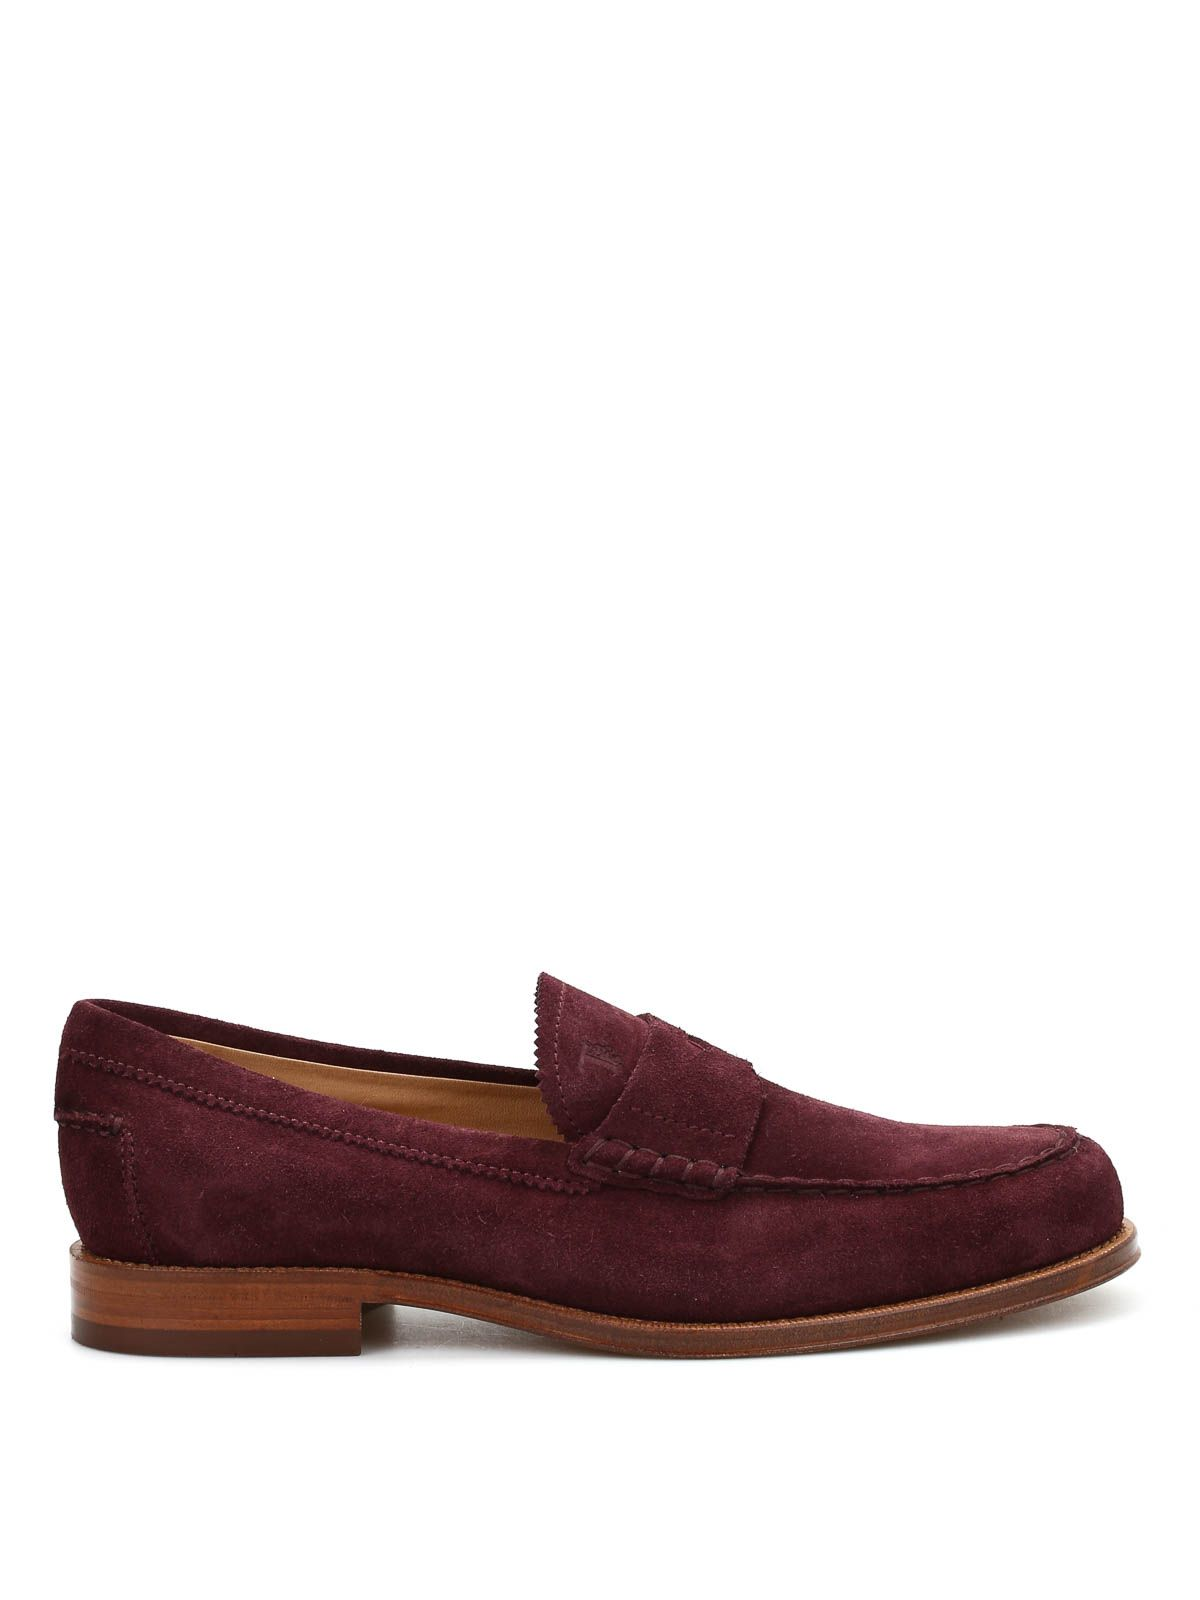 8d2711a5be0 TOD S TOD S MEN S BURGUNDY SUEDE LOAFERS.  tods  shoes